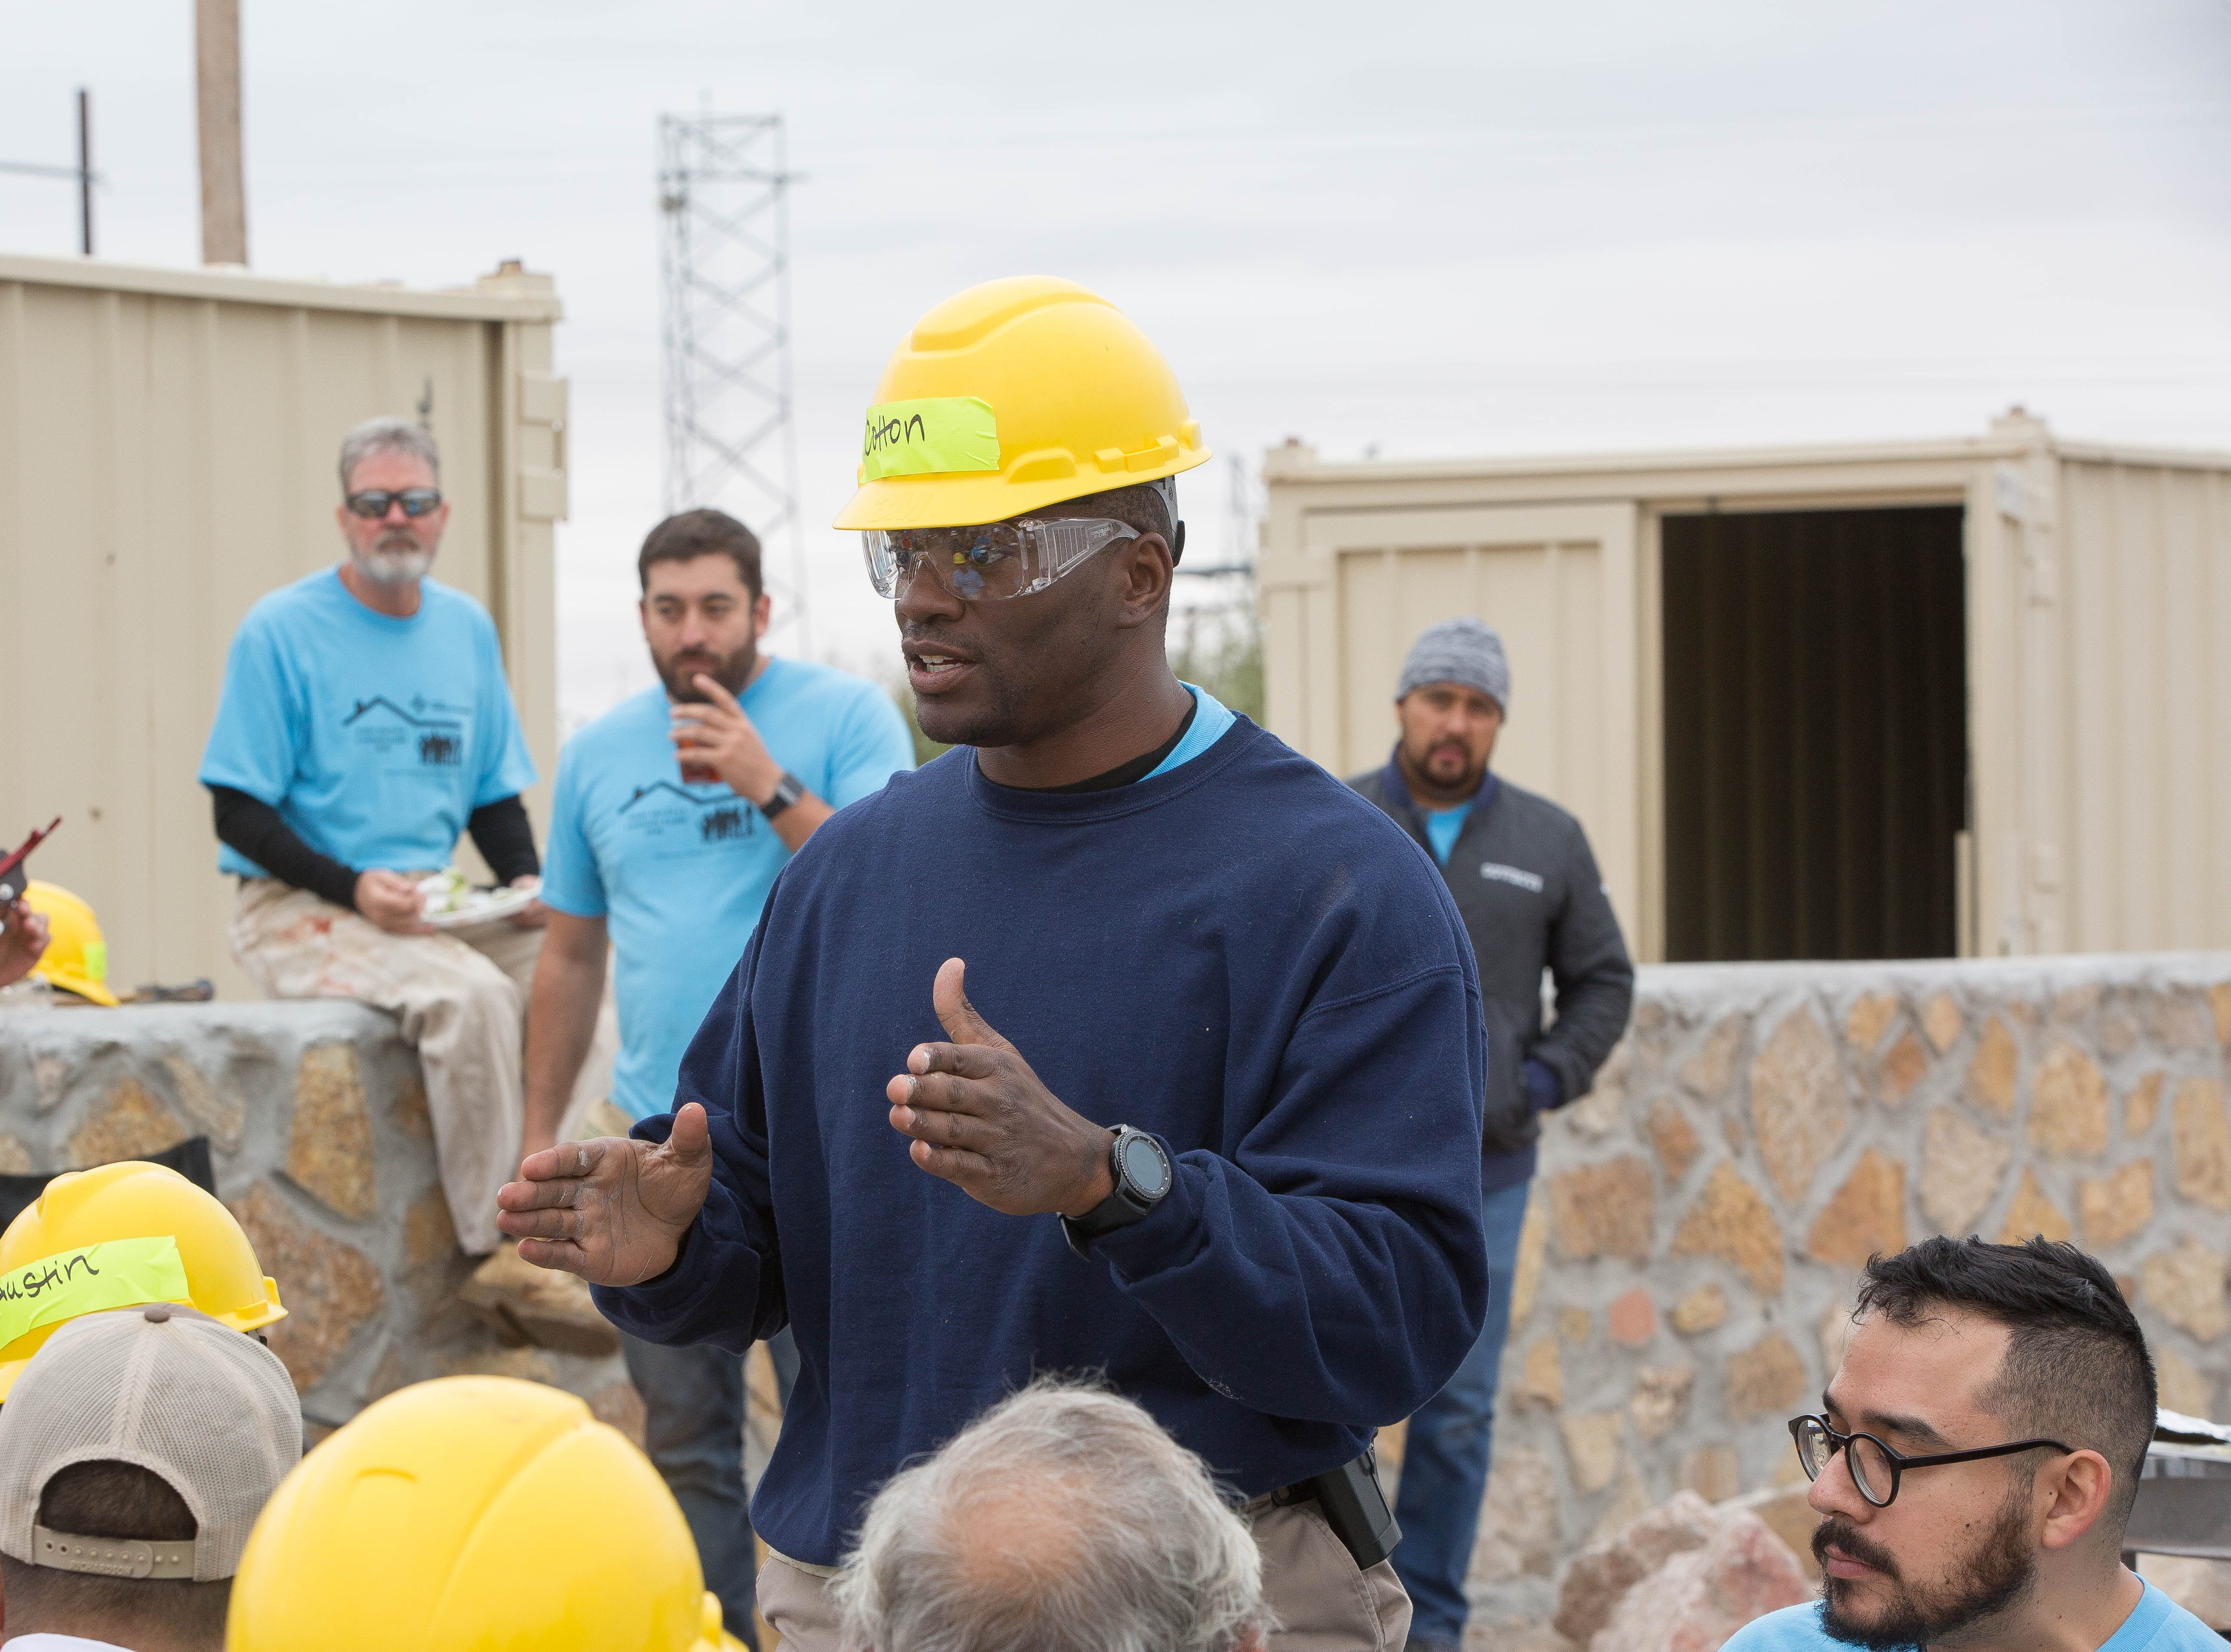 Jamar Cotton, a Doña Ana County Sheriffs deputy, one of the celebrity volunteers that worked along side other volunteers to build homes on the Habitat for Humanity, Wednesday October 17, 2018.